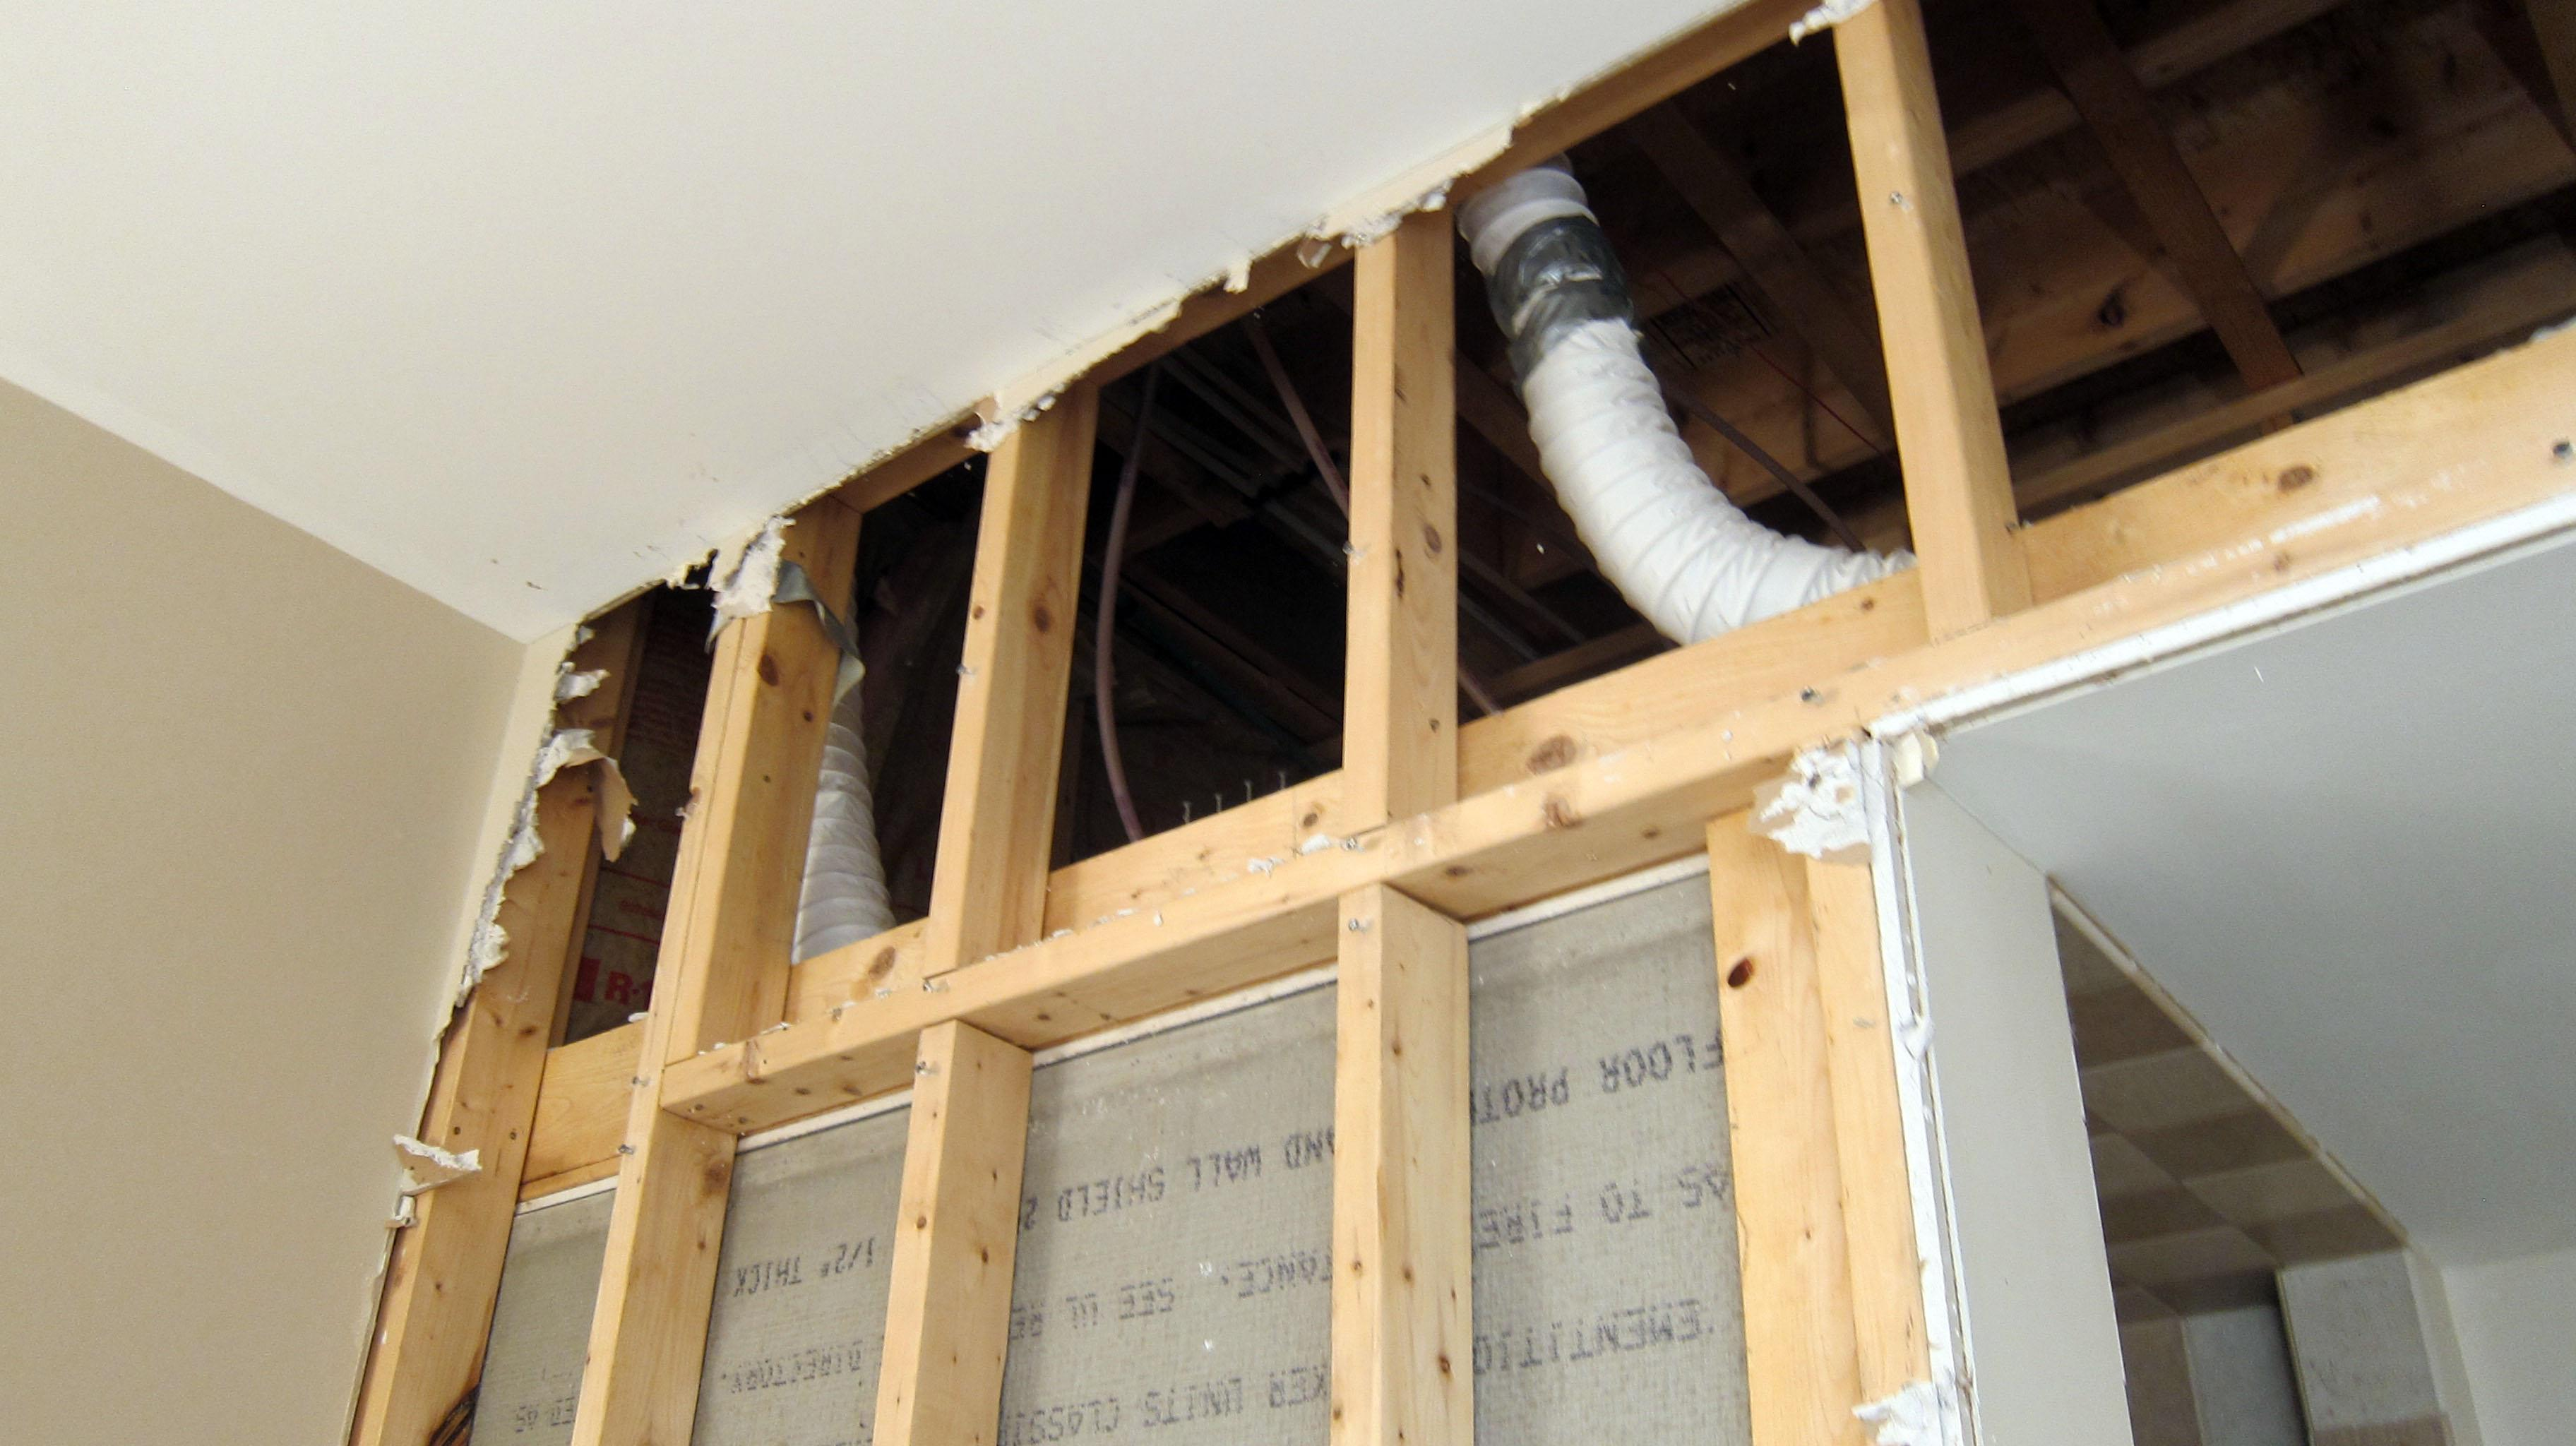 How To Install A Bathroom Exhaust Fan Poorly Installed Bath Fan Vents Can Cause Serious Problems The